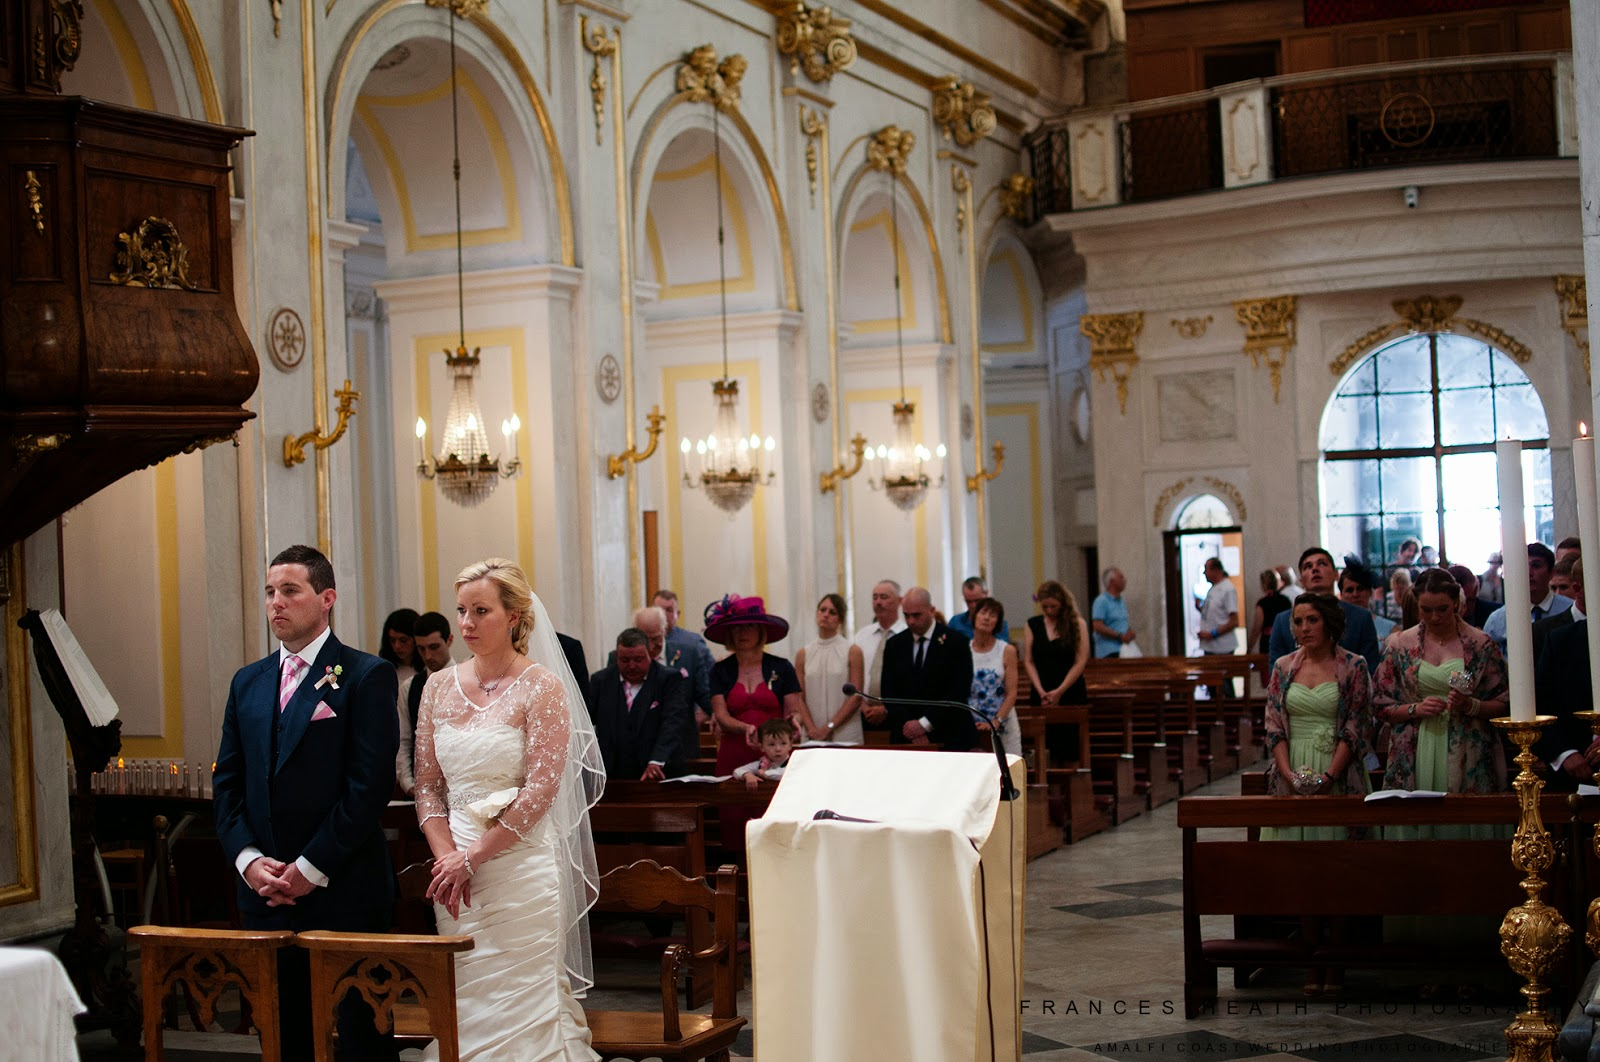 Chruch wedding at Santa Maria Assunta in Positano